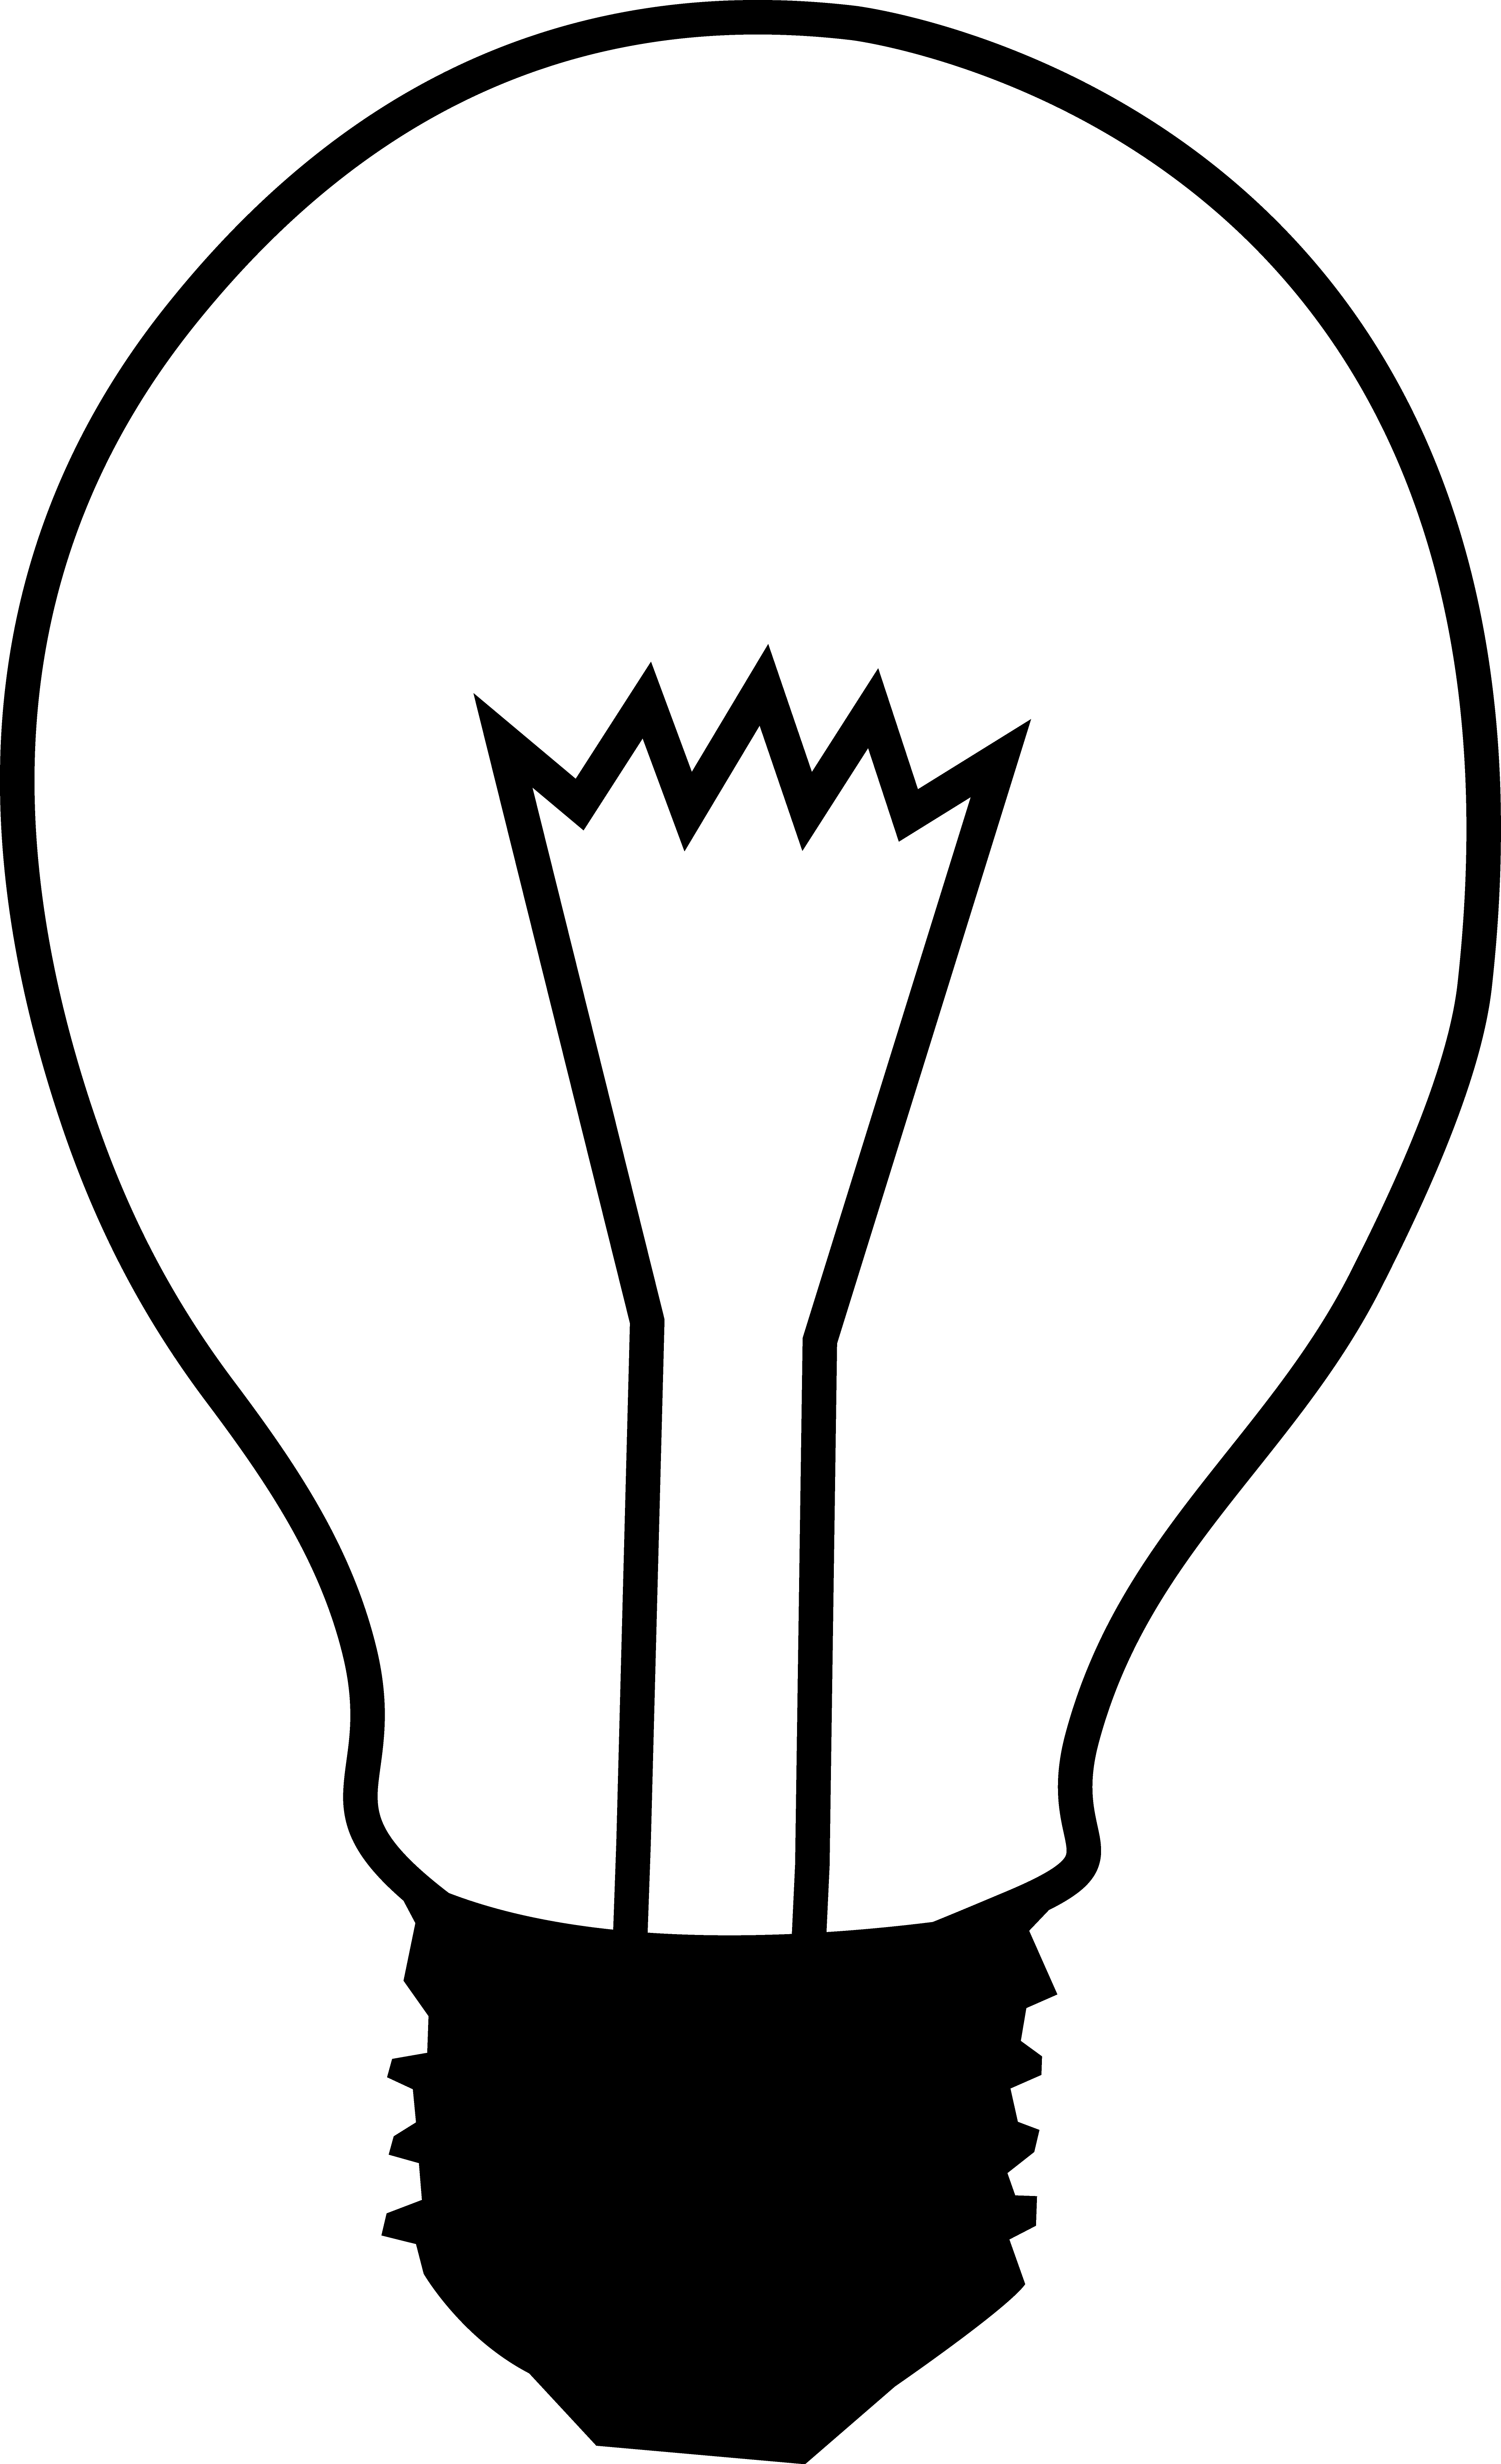 Electrical clipart electrical service. Electrician clip arts for